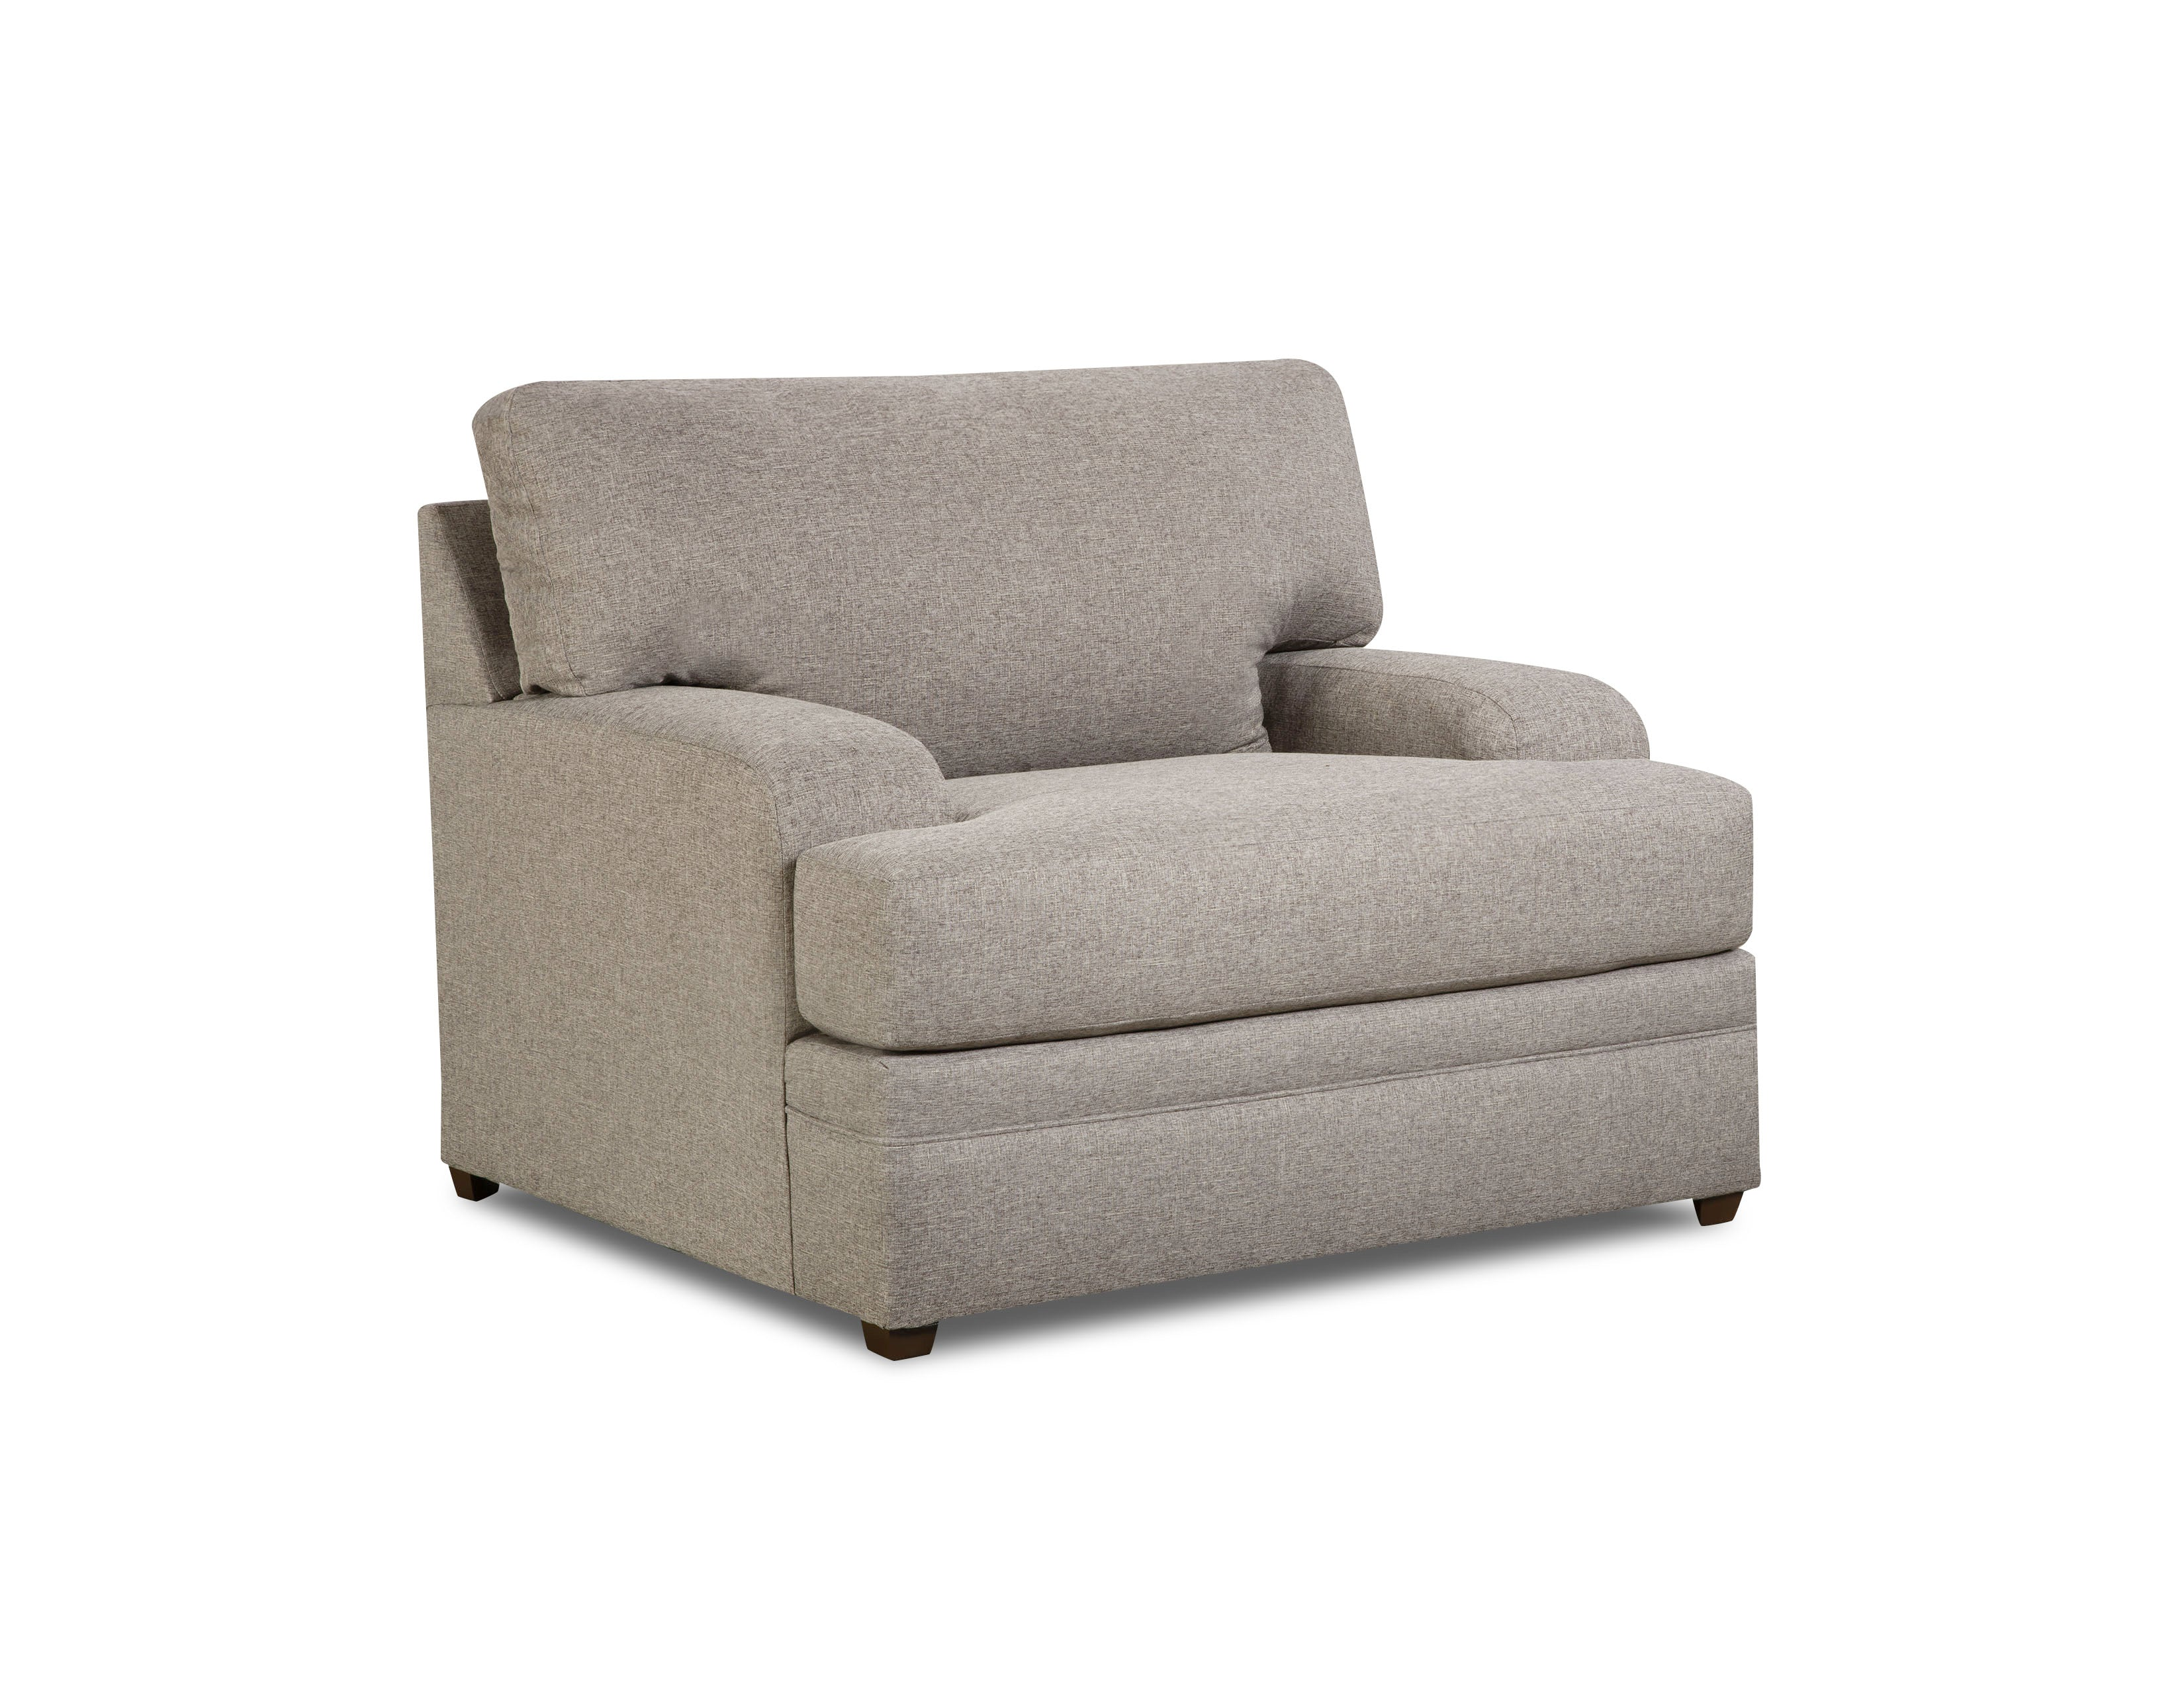 Dublin Briar 2 Pc. Sectional - Lifestyle Furniture